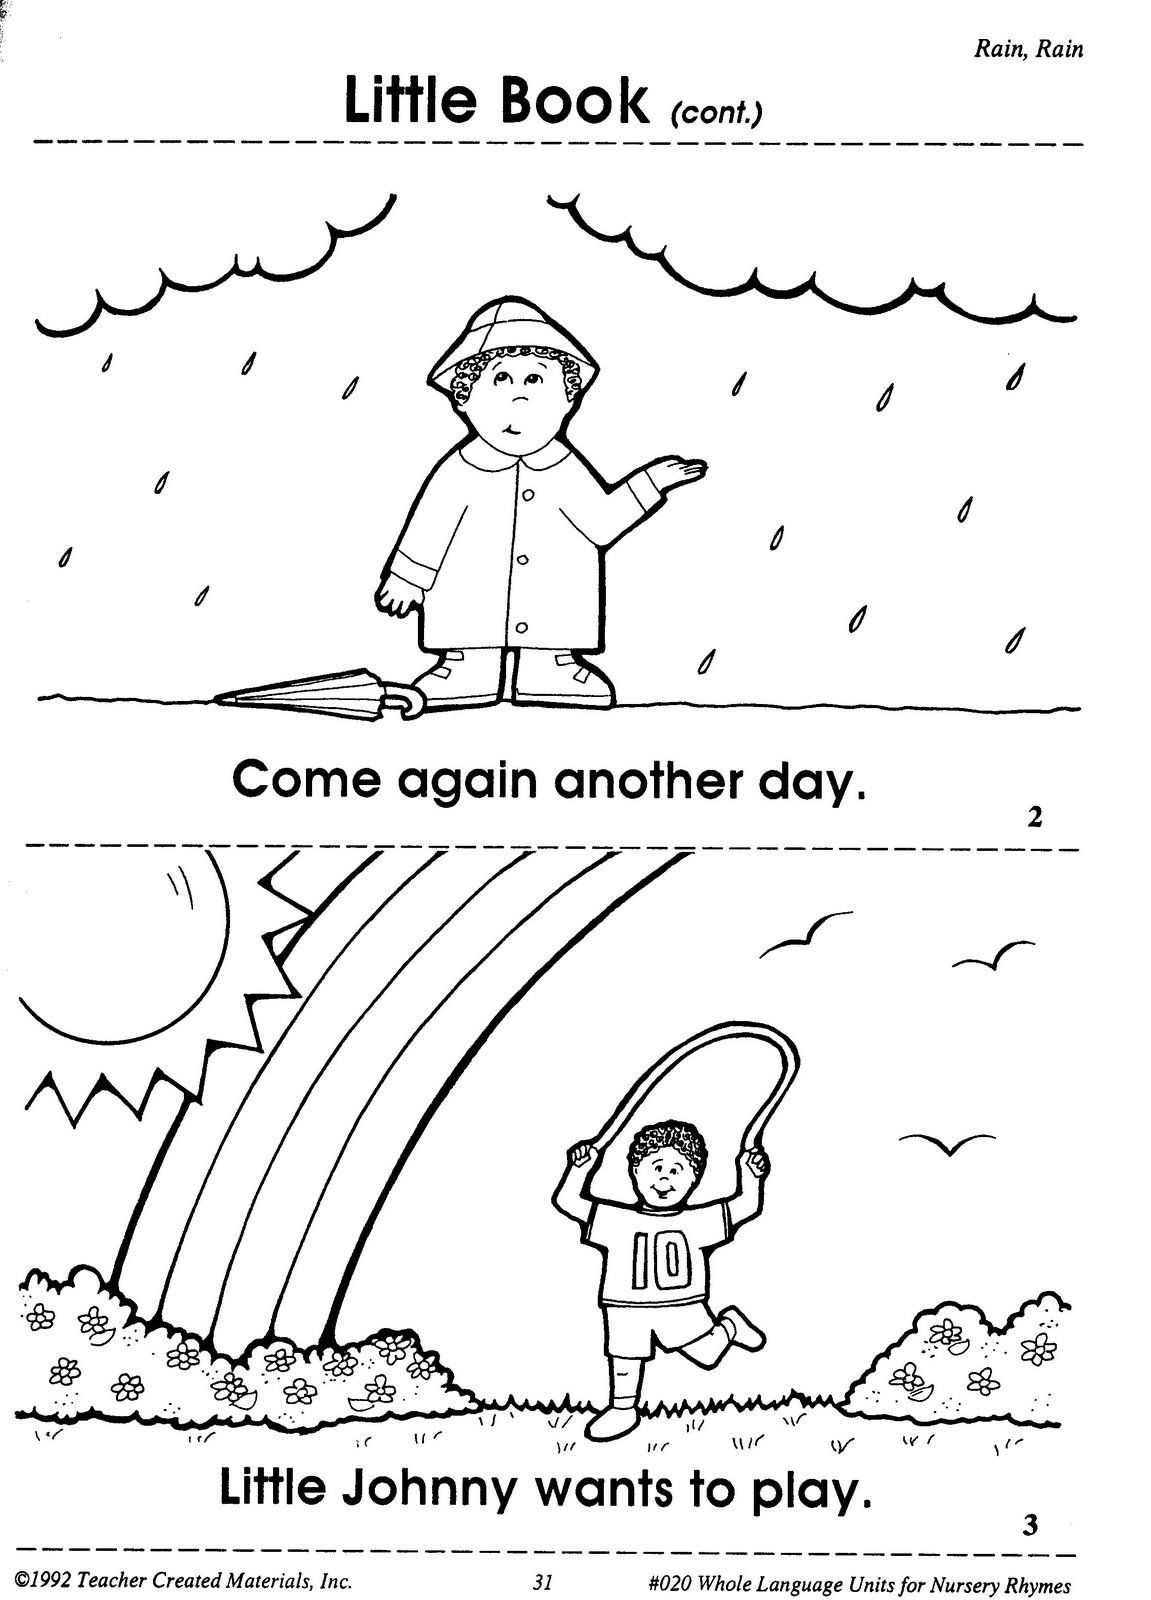 worksheet Rain Rain Go Away Worksheet rain go away come again another day little johnny wants to play